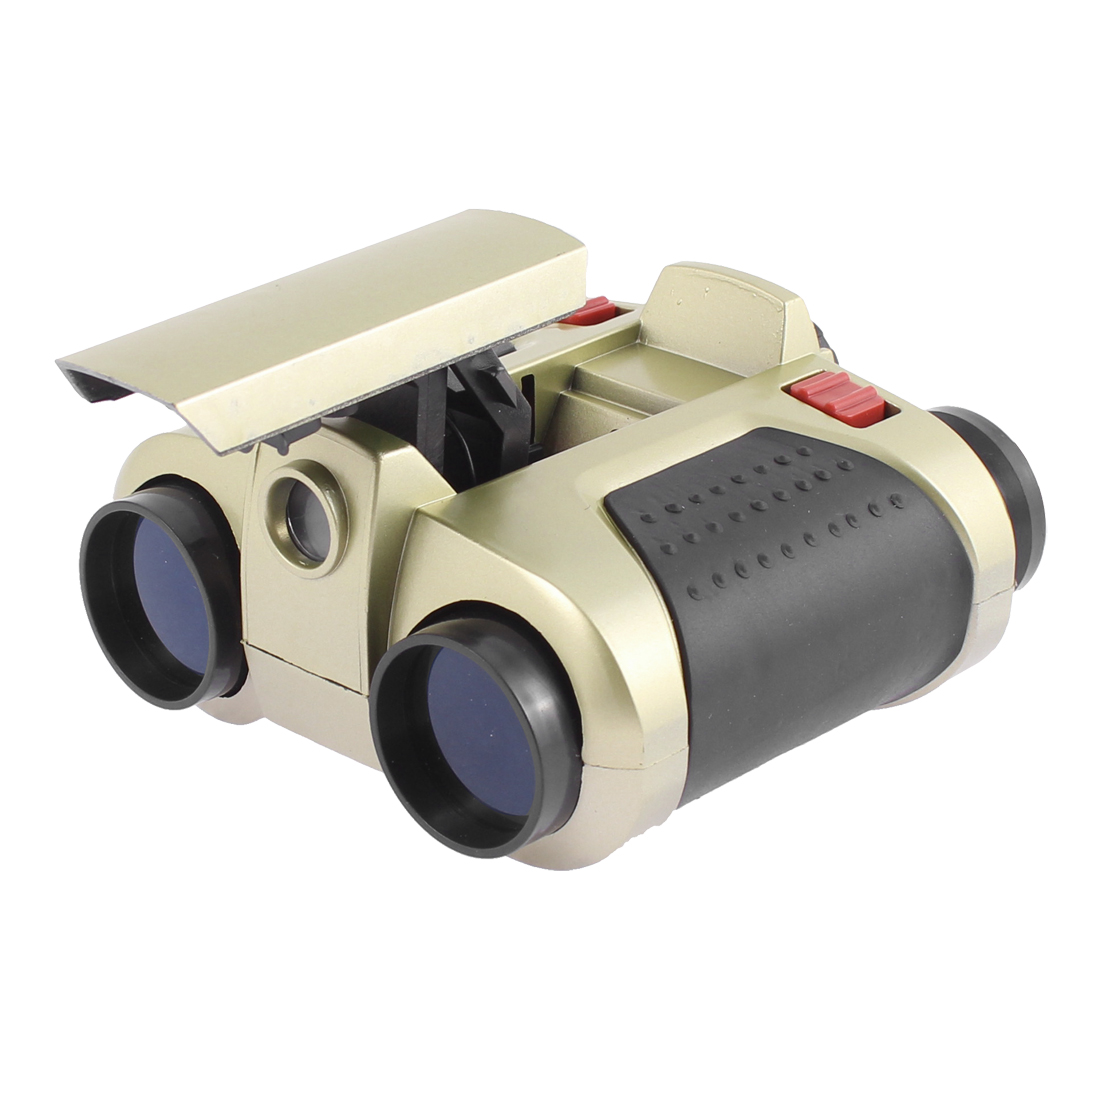 Night Vision 4x30mm Portable Pocket Binocular Telescope w Pop-Up Light